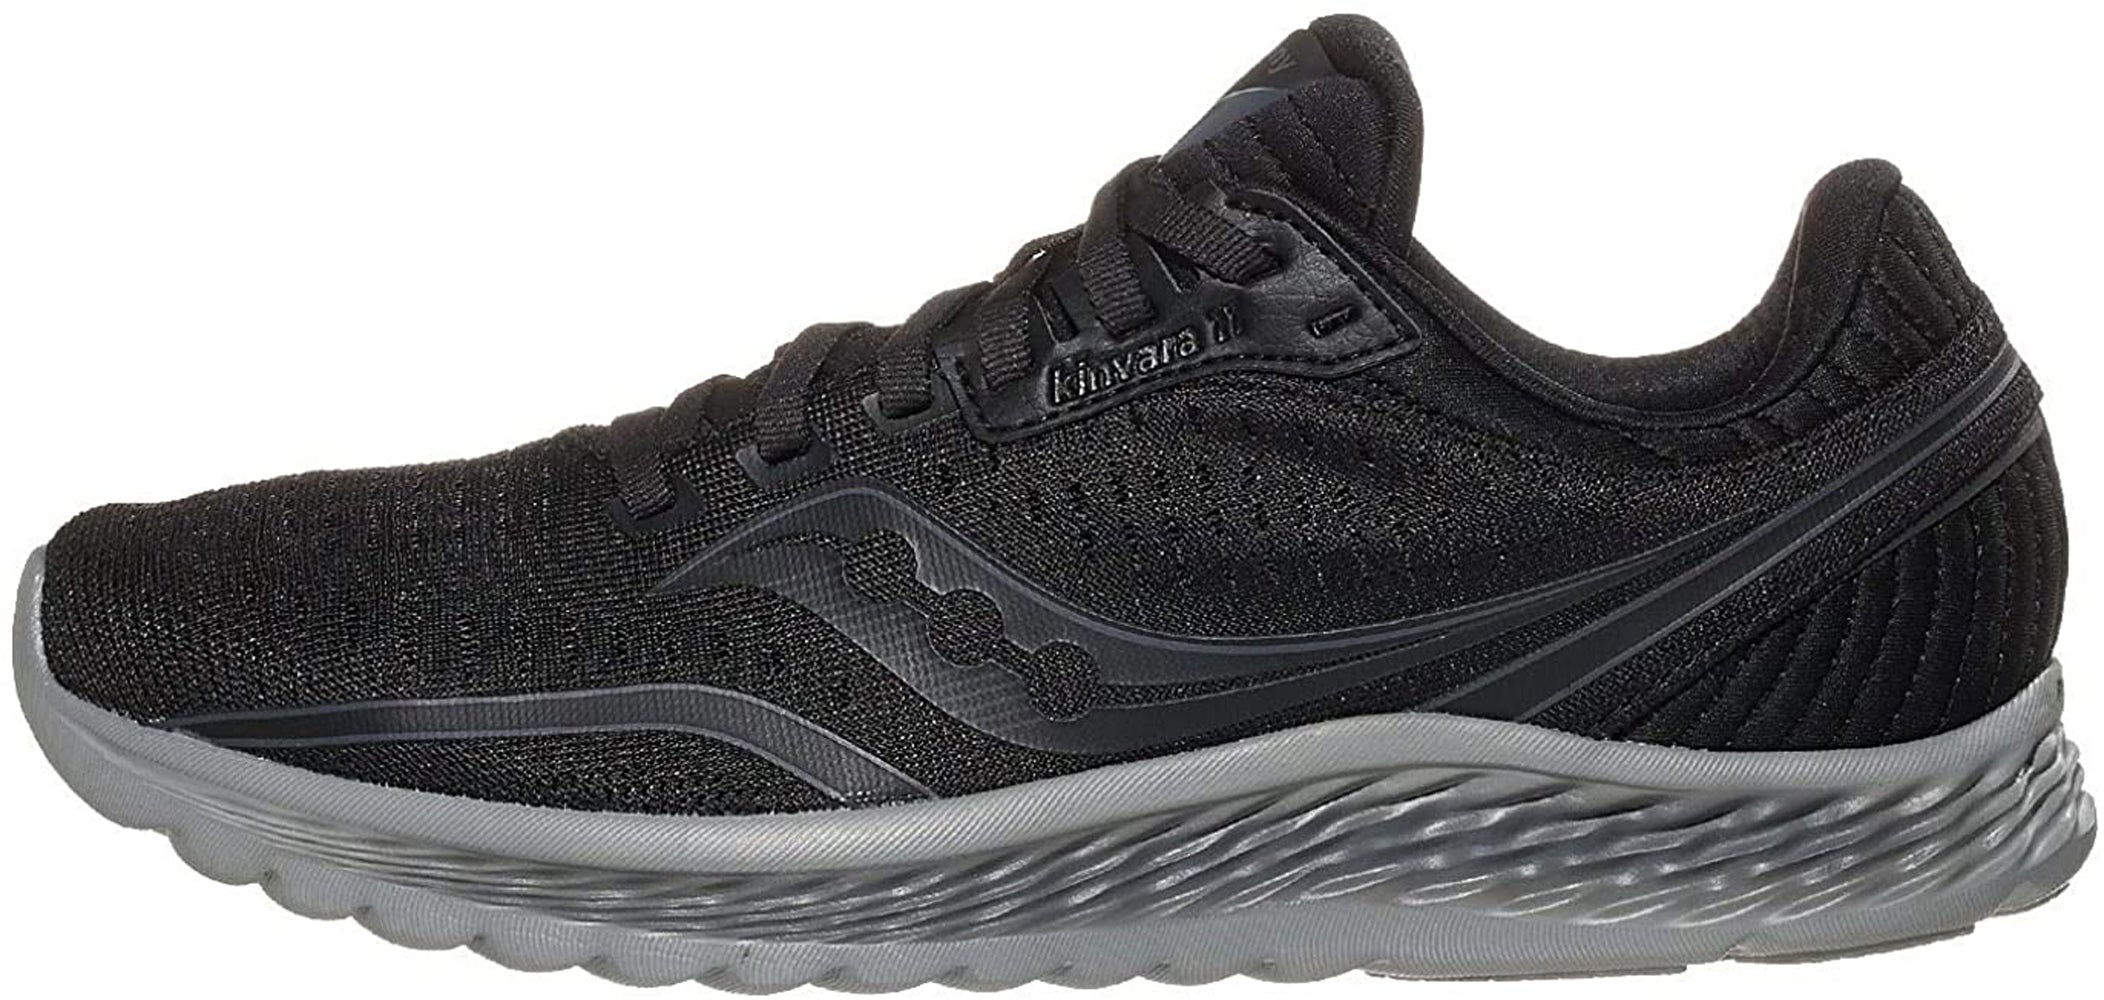 Saucony Women's Kinvara 11 Running Shoe in Blackout Side Angle View